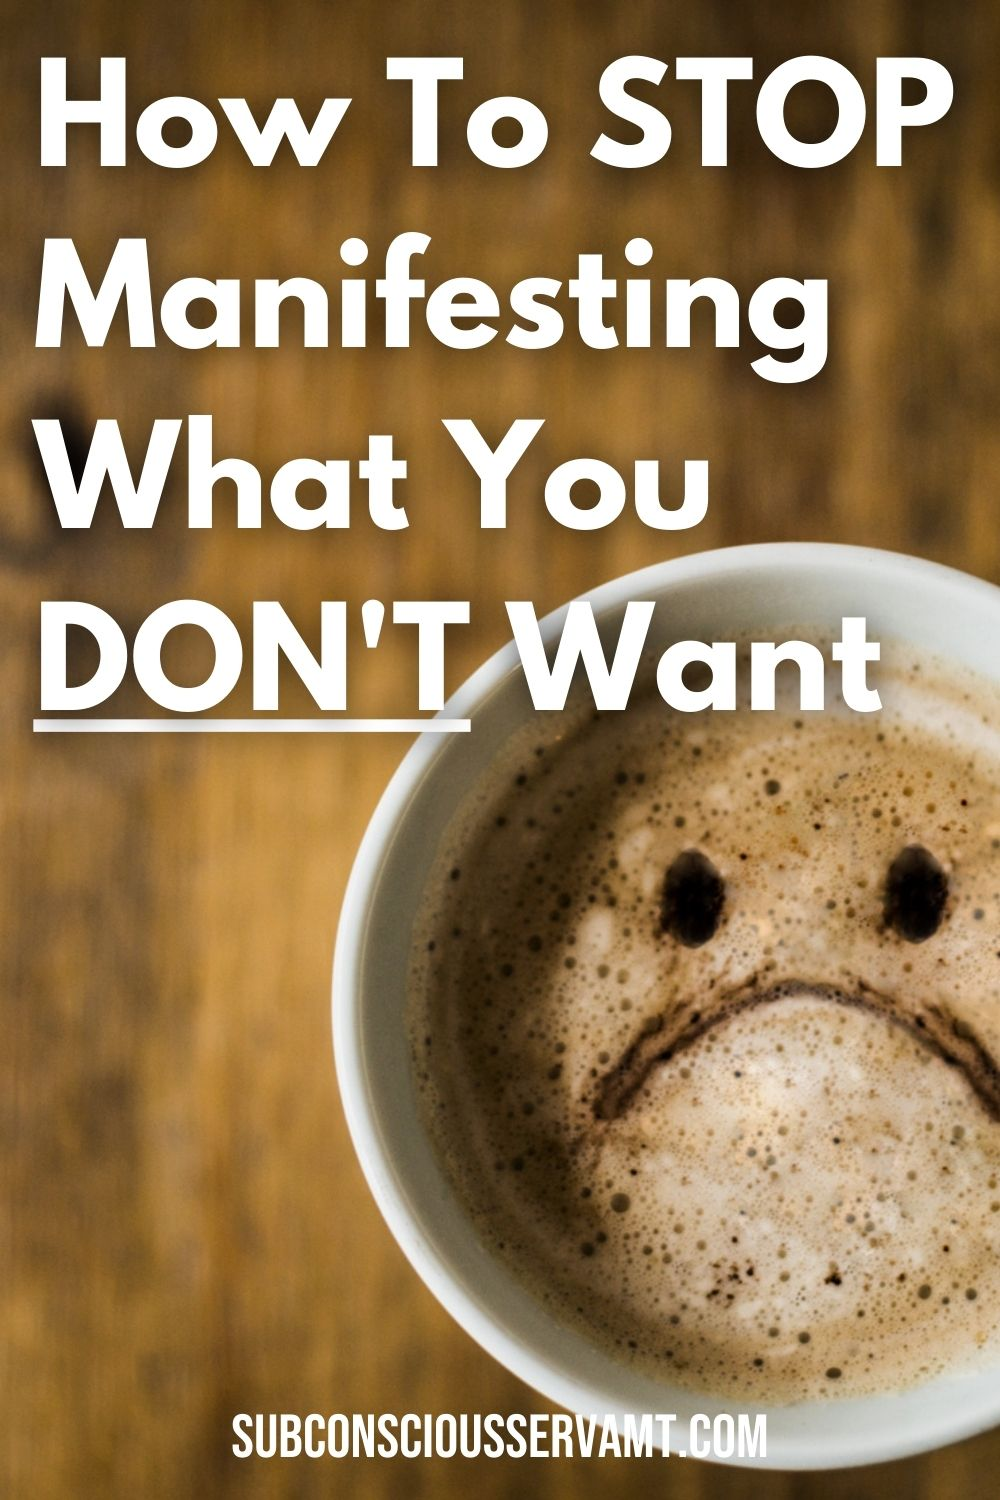 How To STOP Manifesting What You DON\'T Want [6 Helpful Practices]